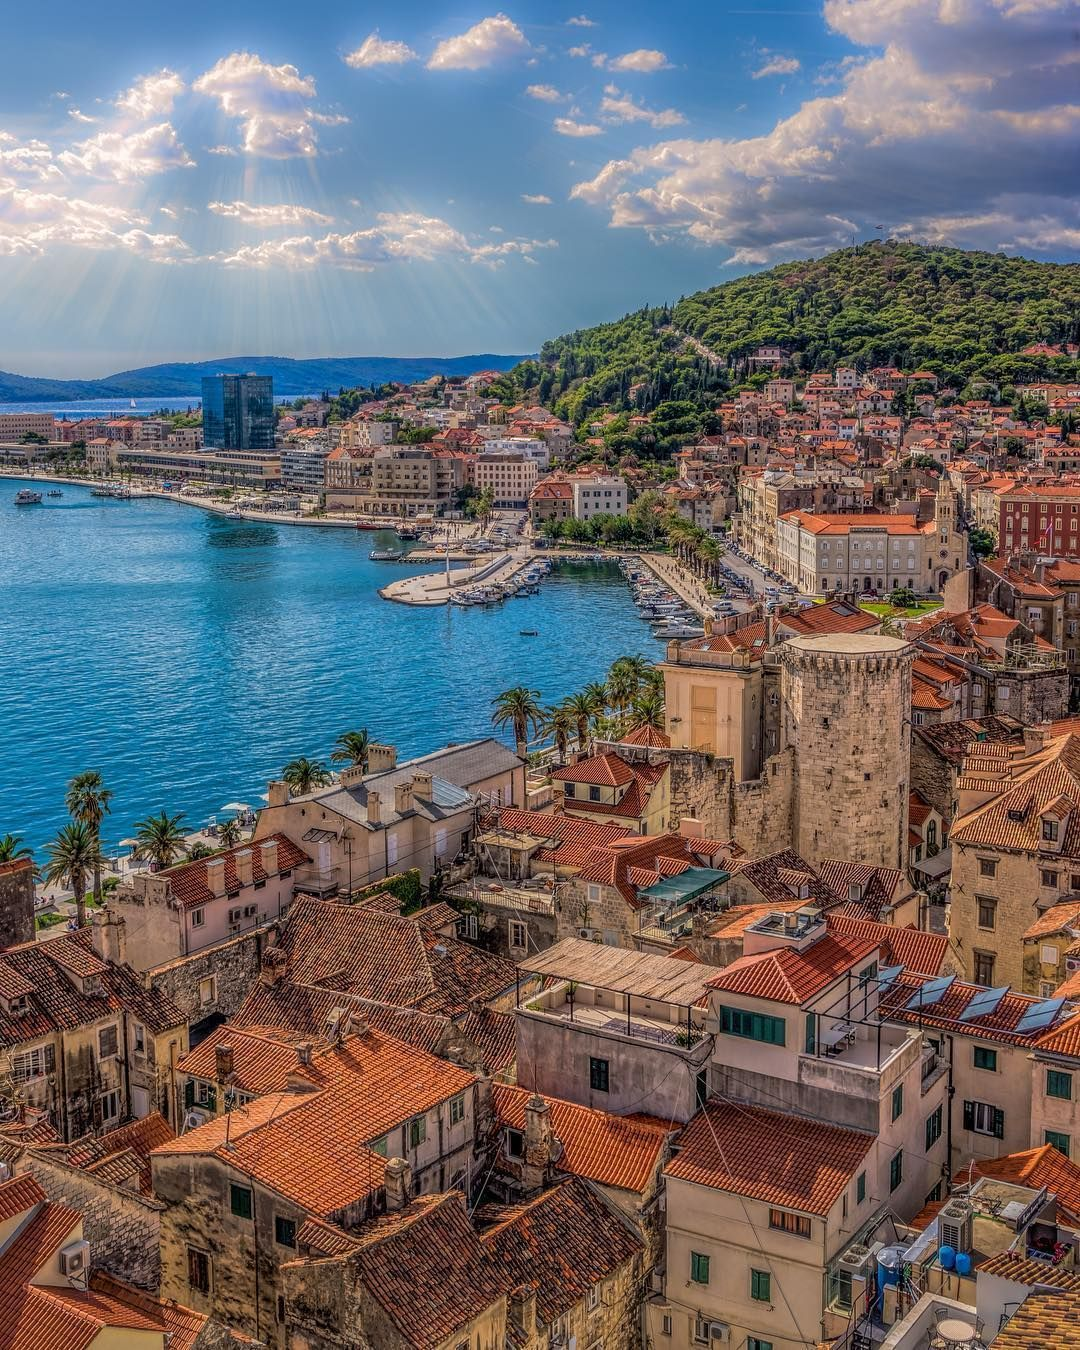 Split Croatia Great Photo By Cdfrith1 Croatia Hrvatska Dubrovnik Split Makarska Zagreb Za Croatia Beach Travel And Tourism Places To Visit